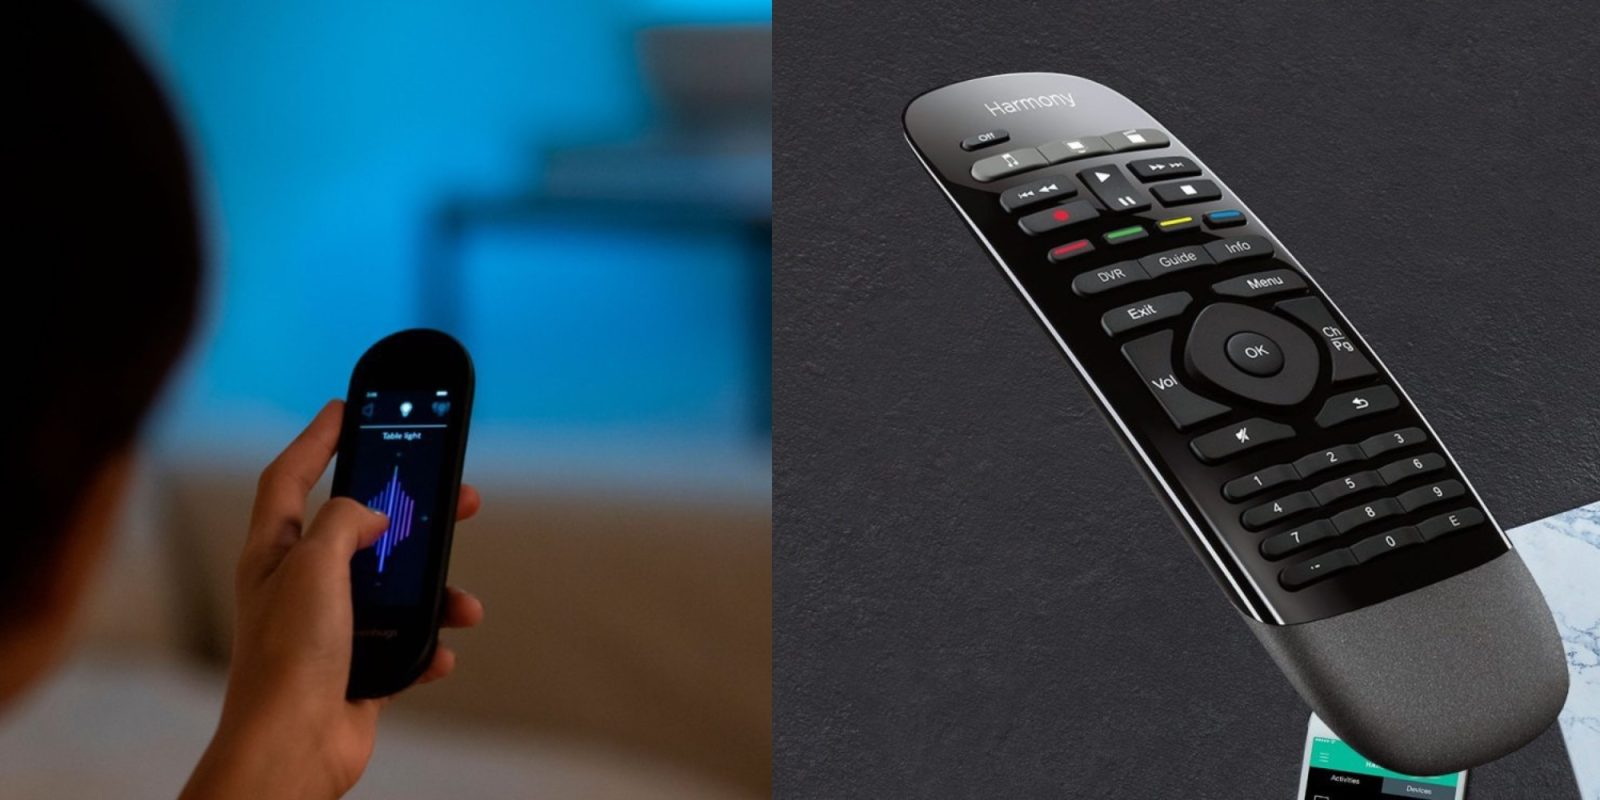 Sevenhugs Smart Remote U gets 40% discount to new low at $120, more from $50